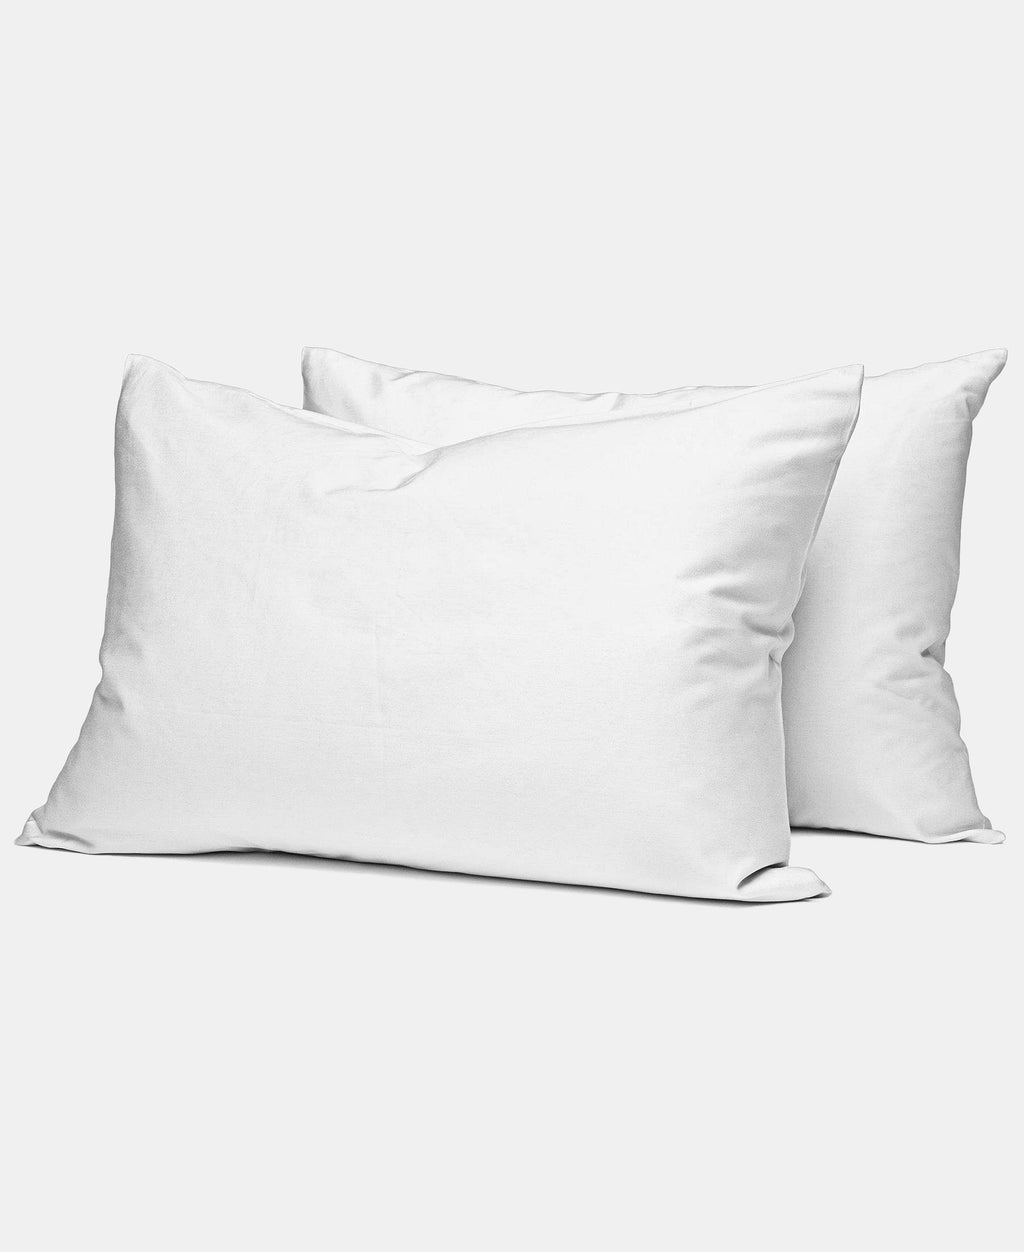 2 Pack 180 Thread Count Horrockses King Size Pillowcases - White